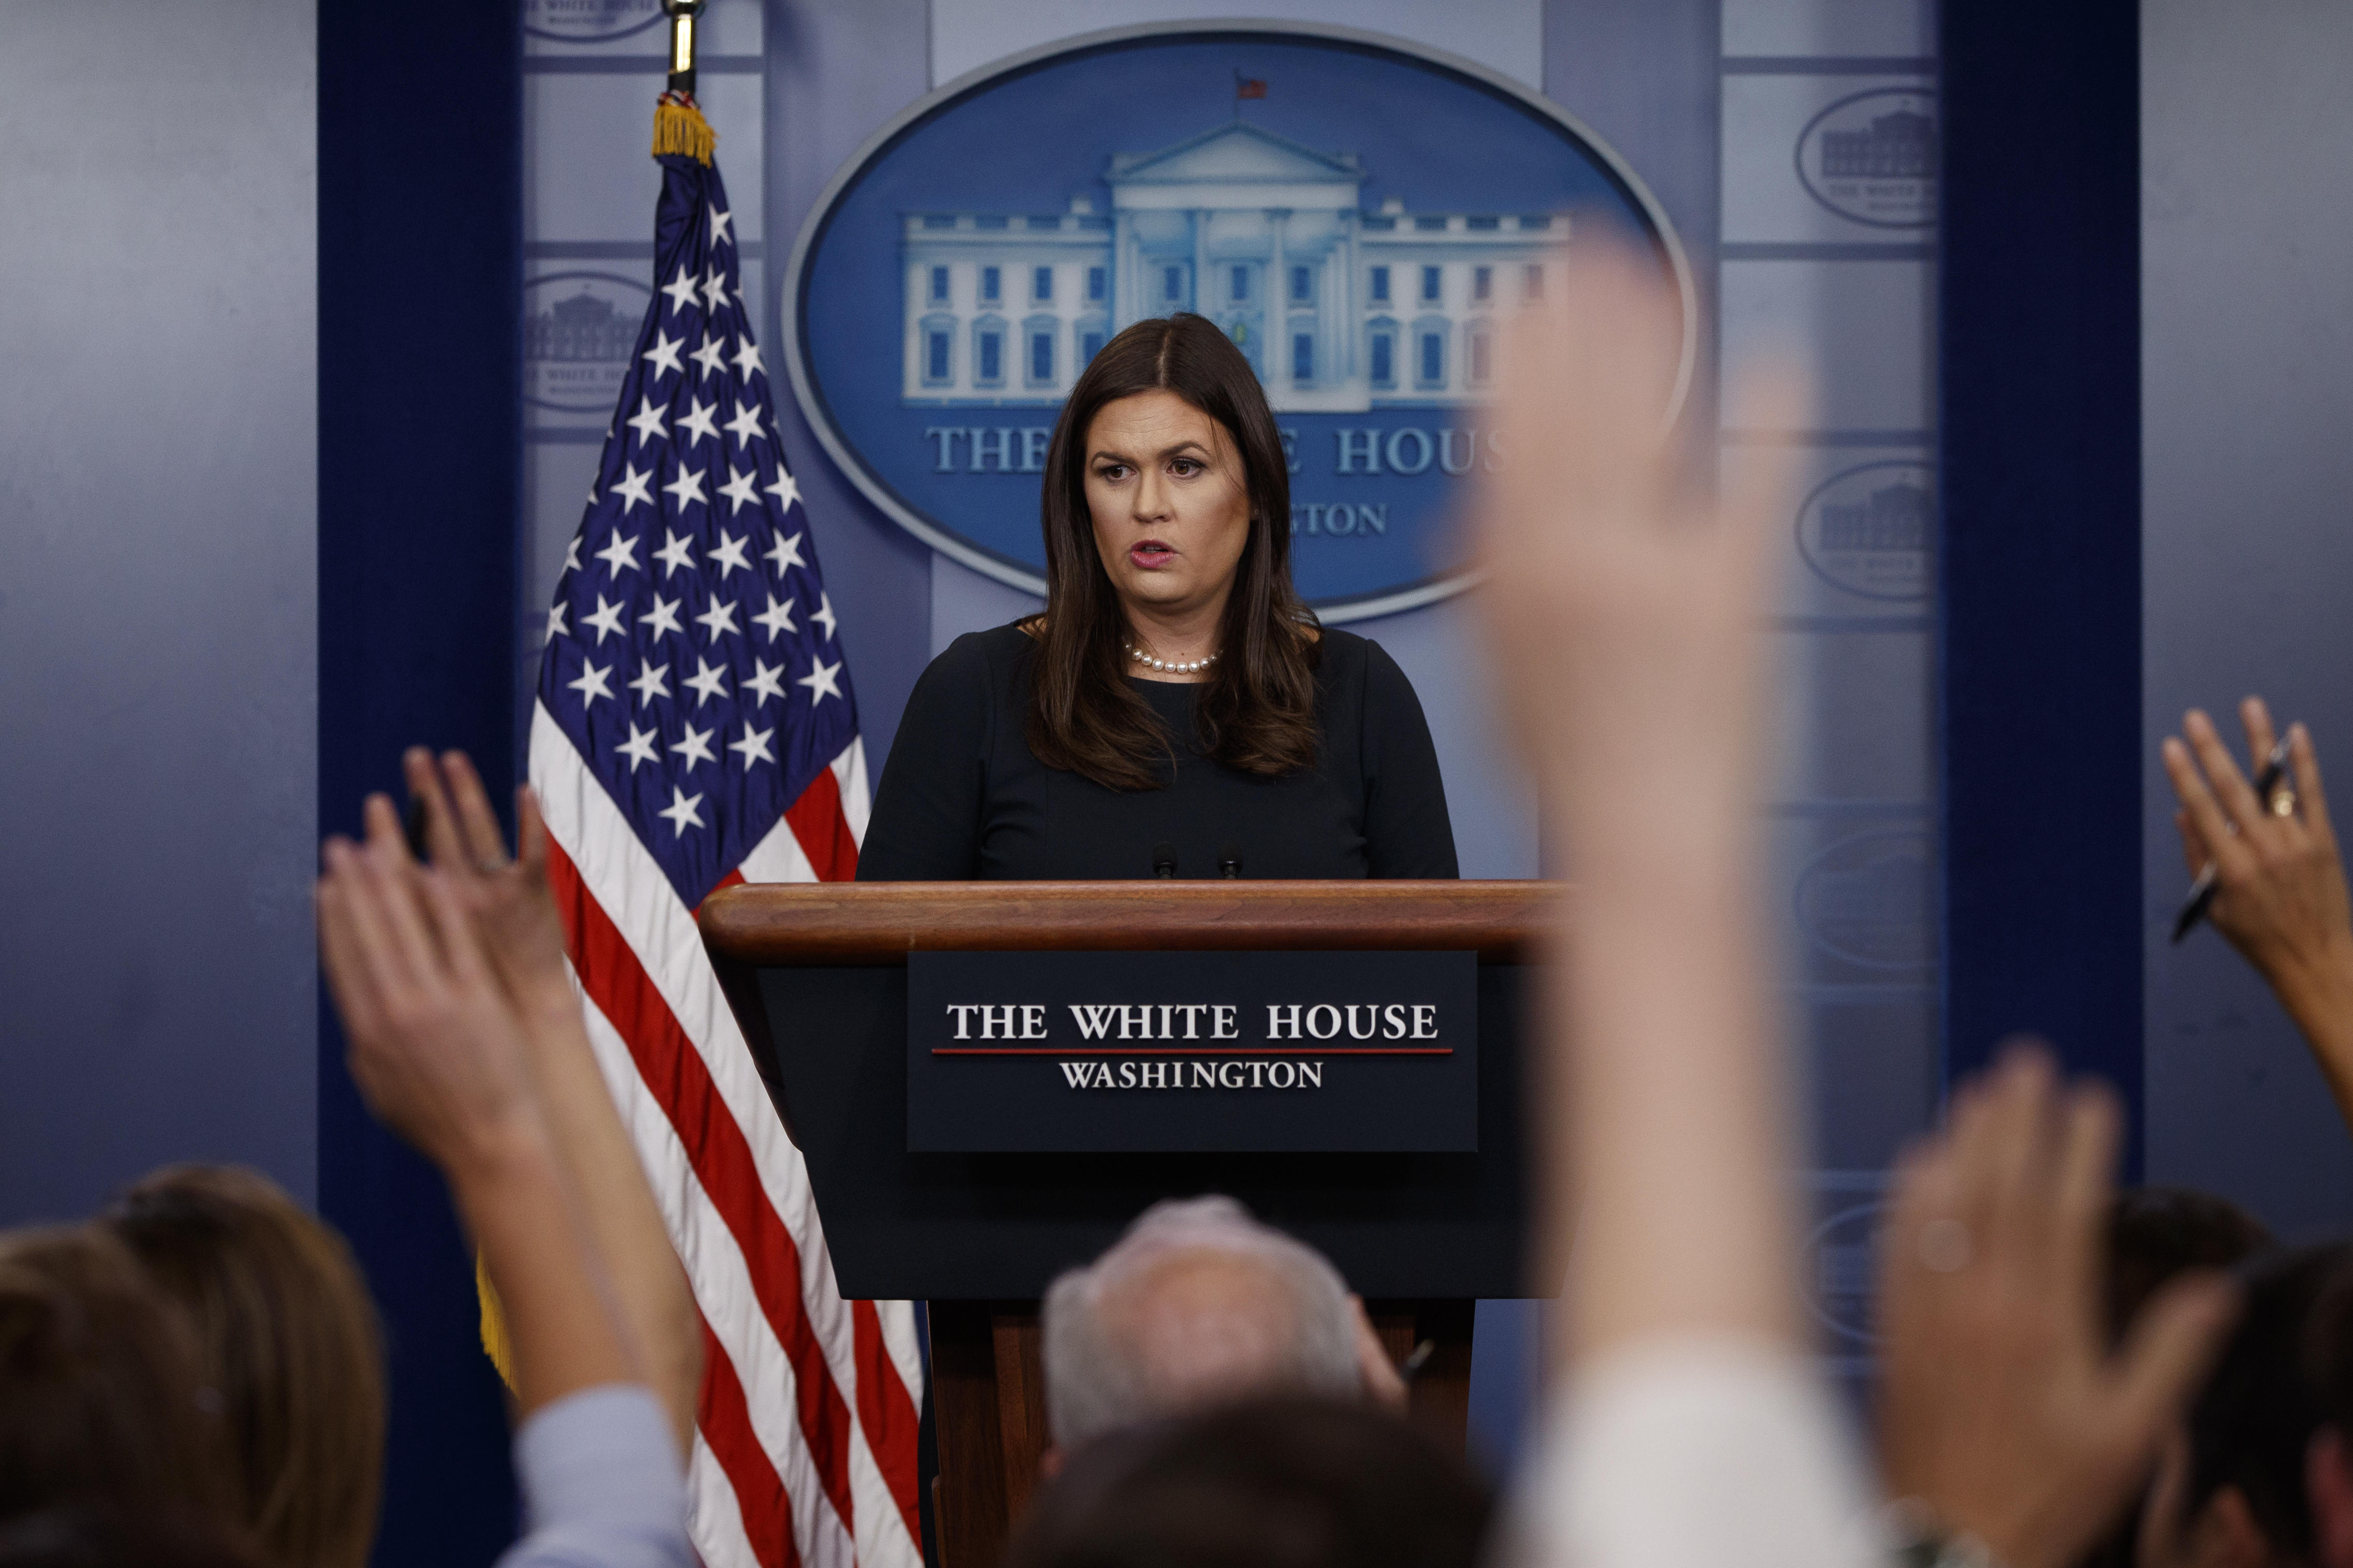 How to watch White House press briefing today, October 12, 2017